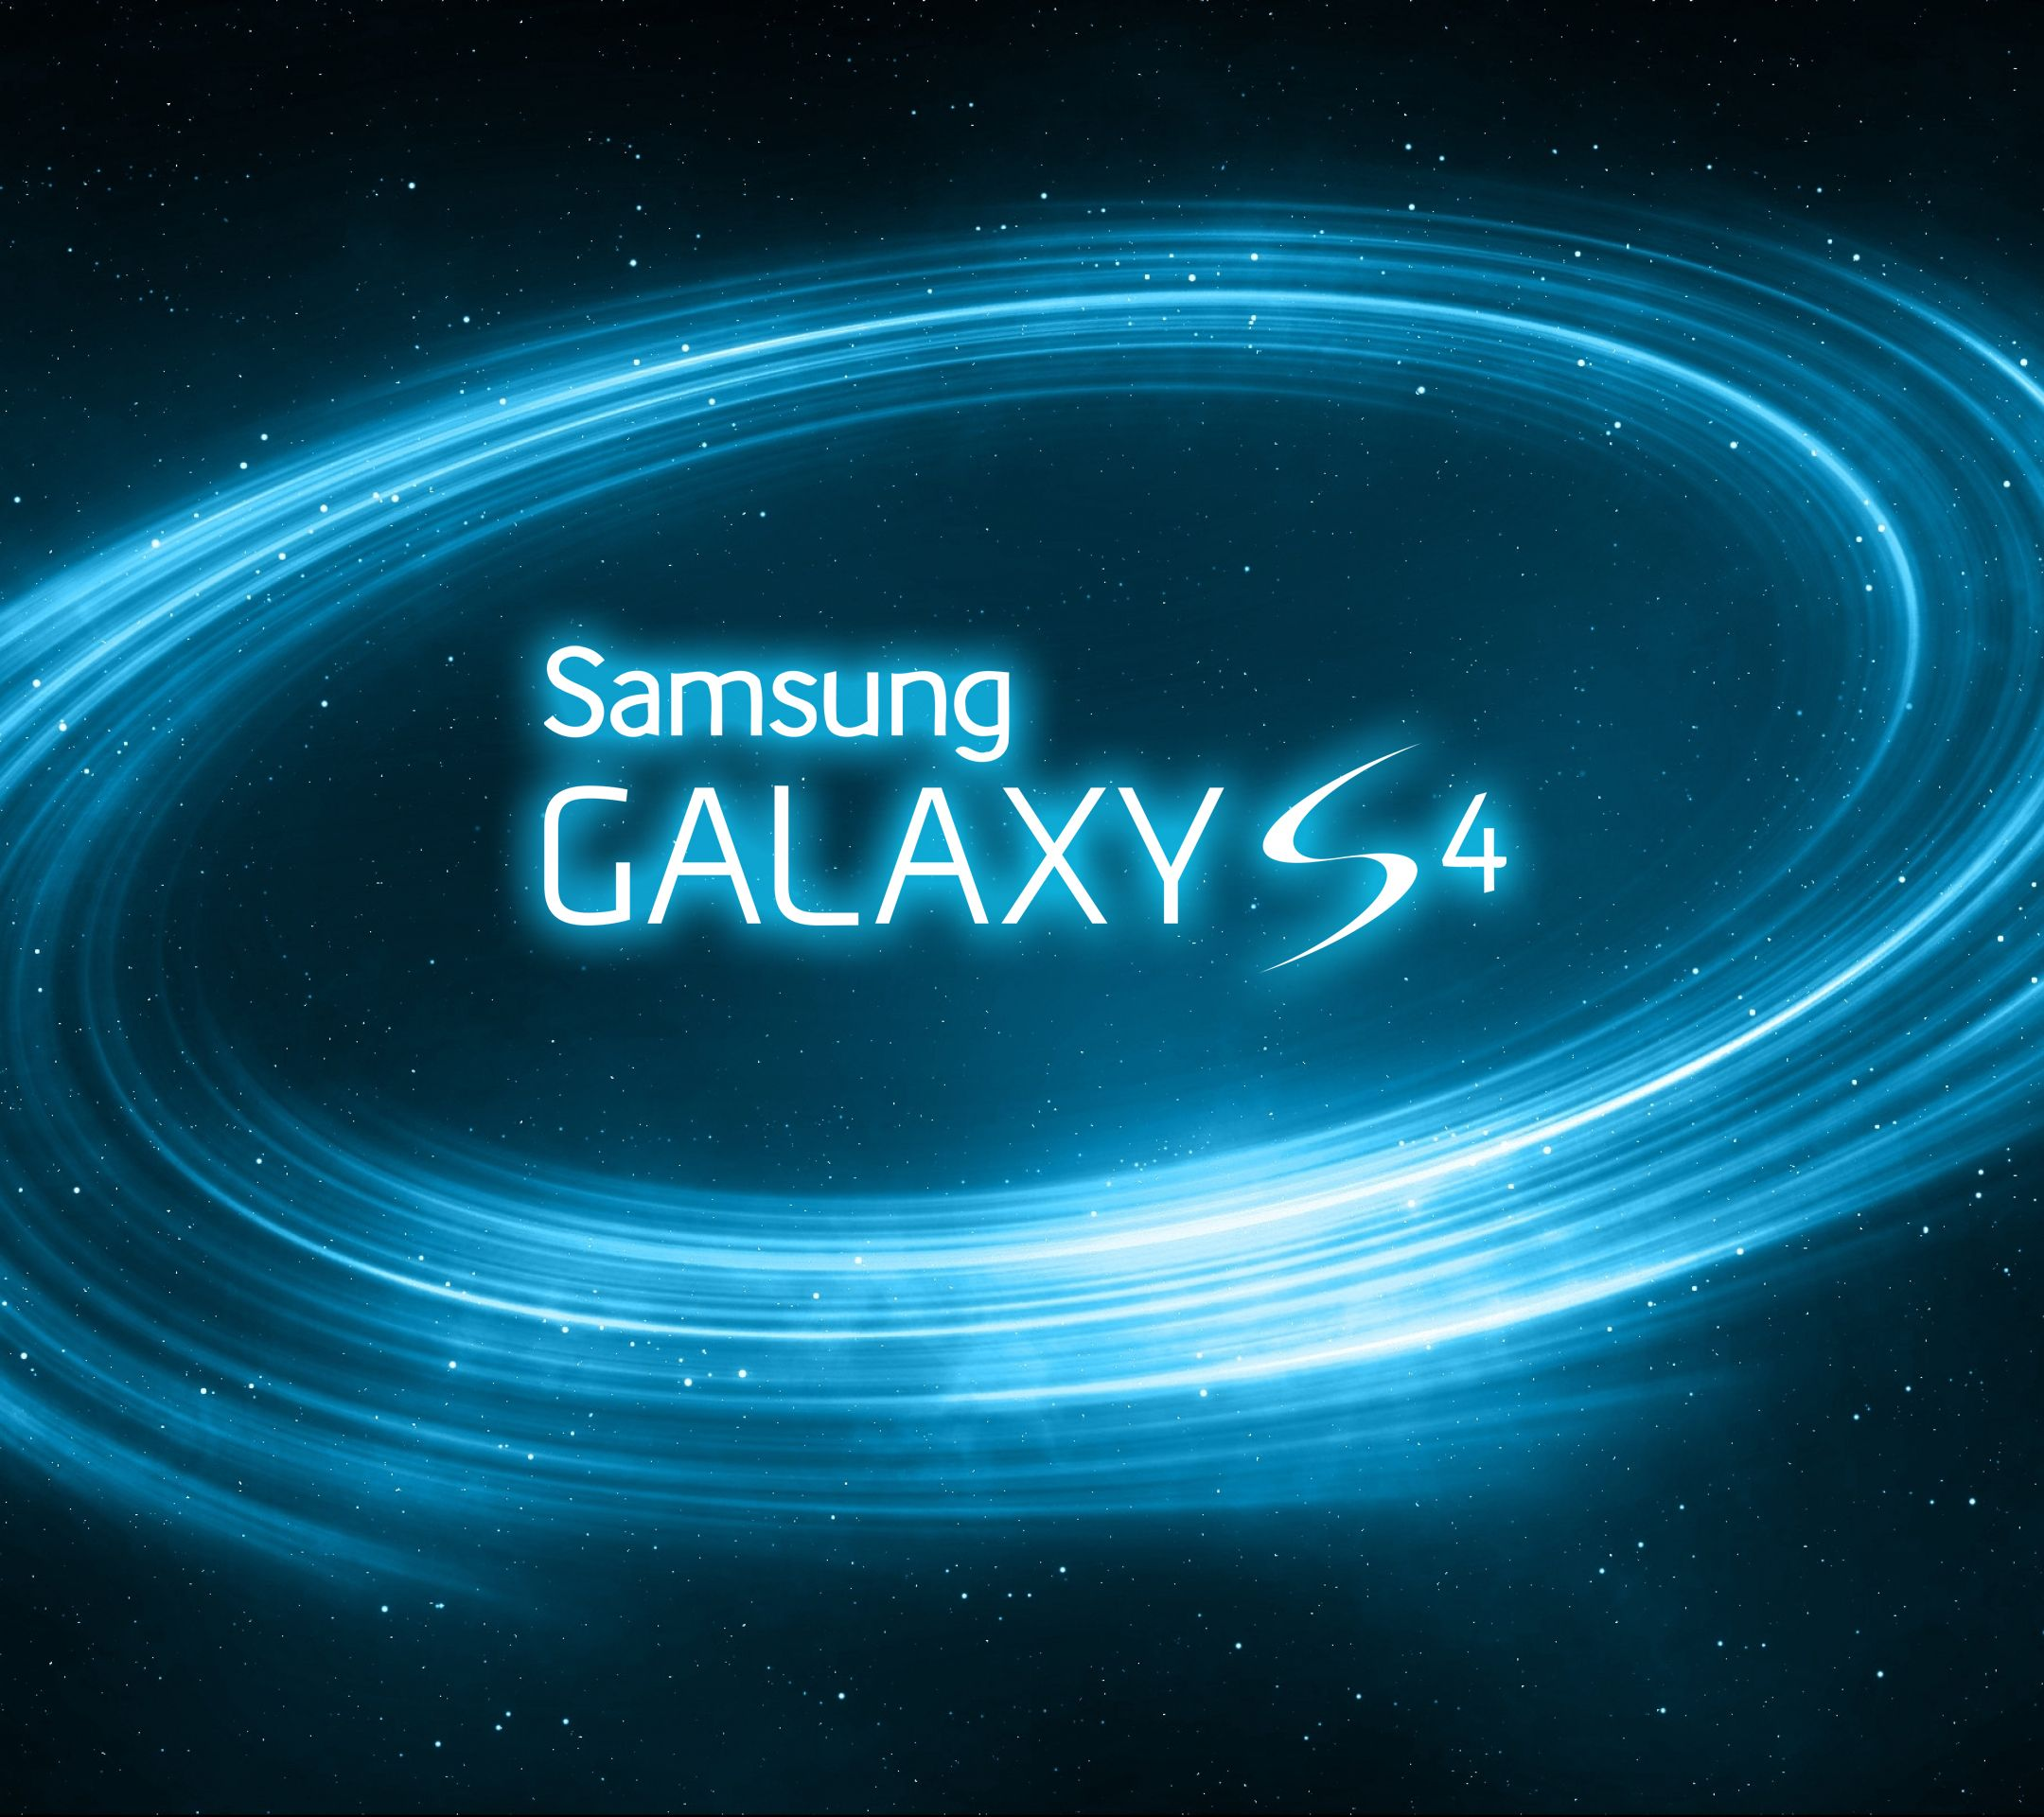 samsung galaxy s4 hd wallpaper - wallpapersafari | epic car